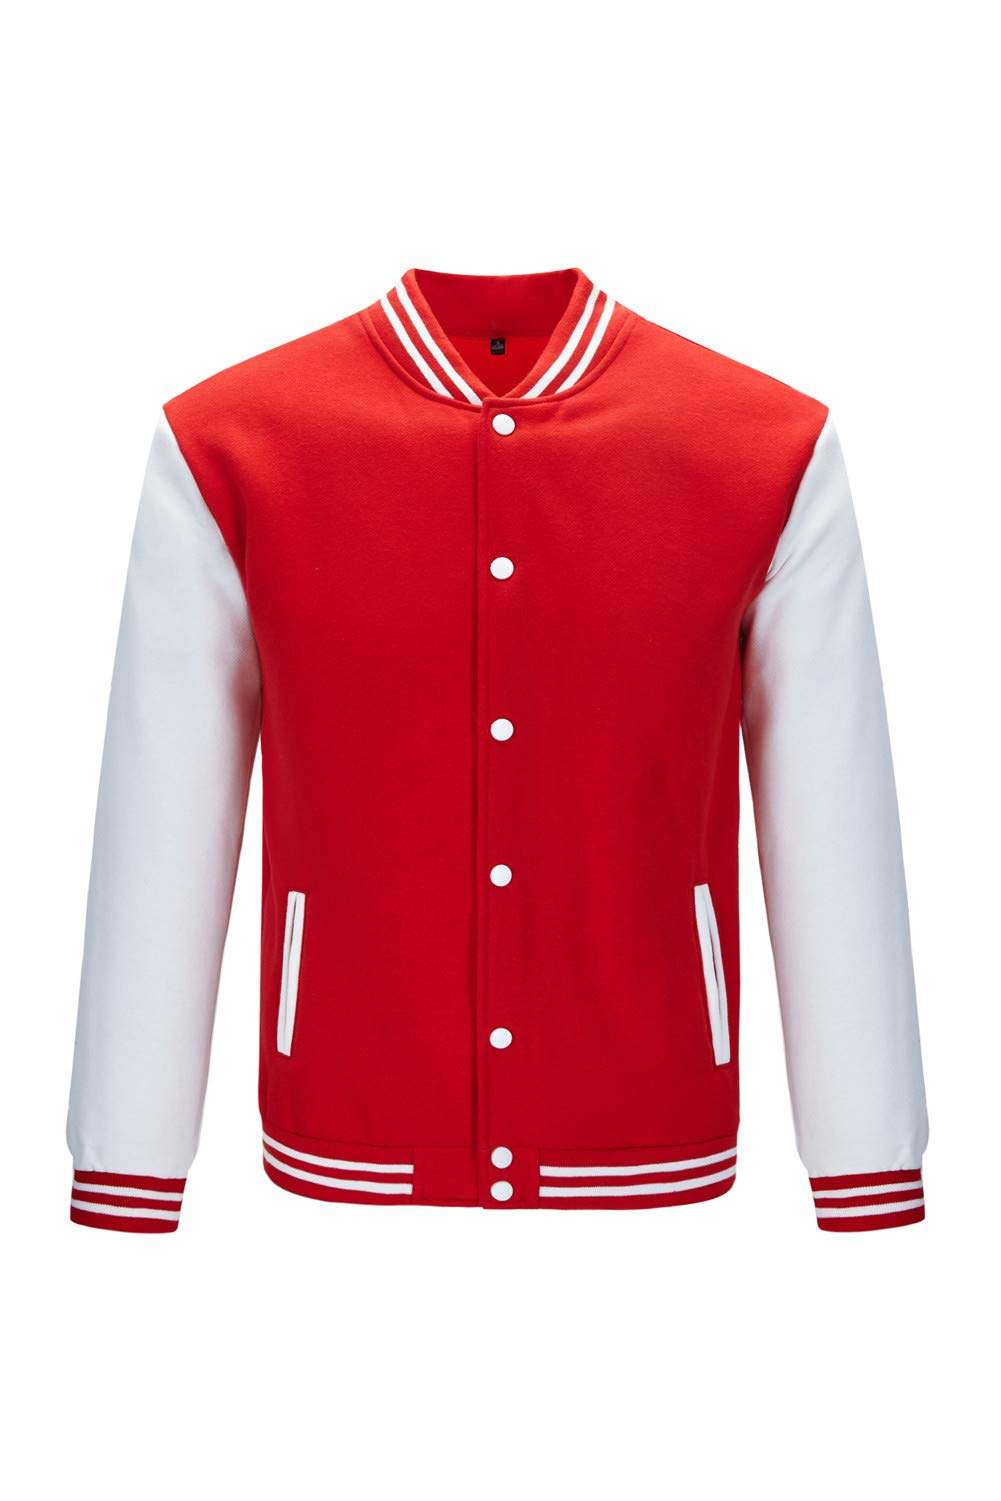 TRIFUNESS Varsity Jacket Letterman Jacket Baseball Jacket with Long Sleeve Banded Collar Size L Red by TRIFUNESS